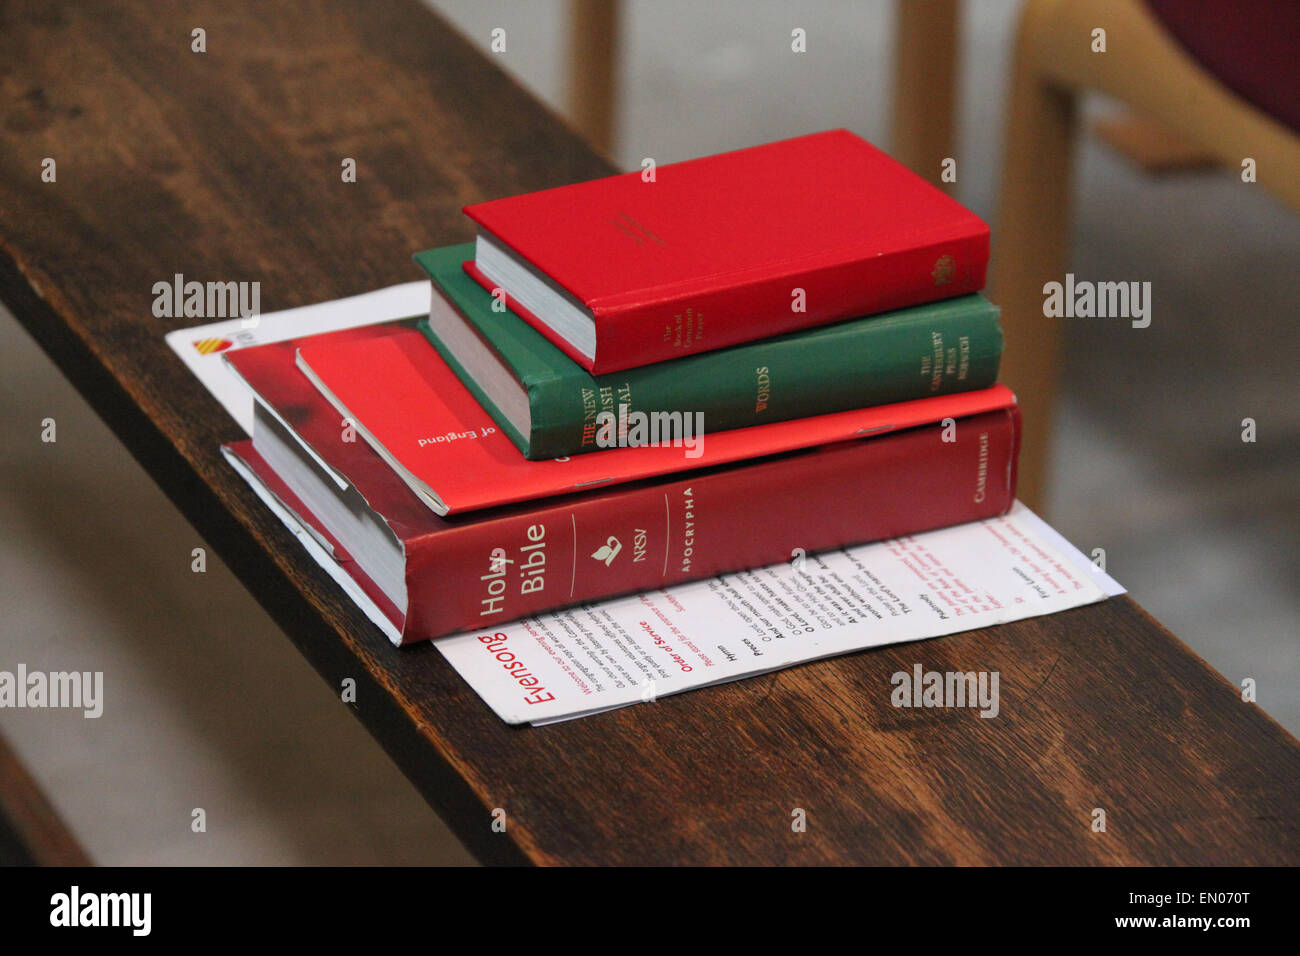 Pile of books in Manchester Cathedral - Stock Image